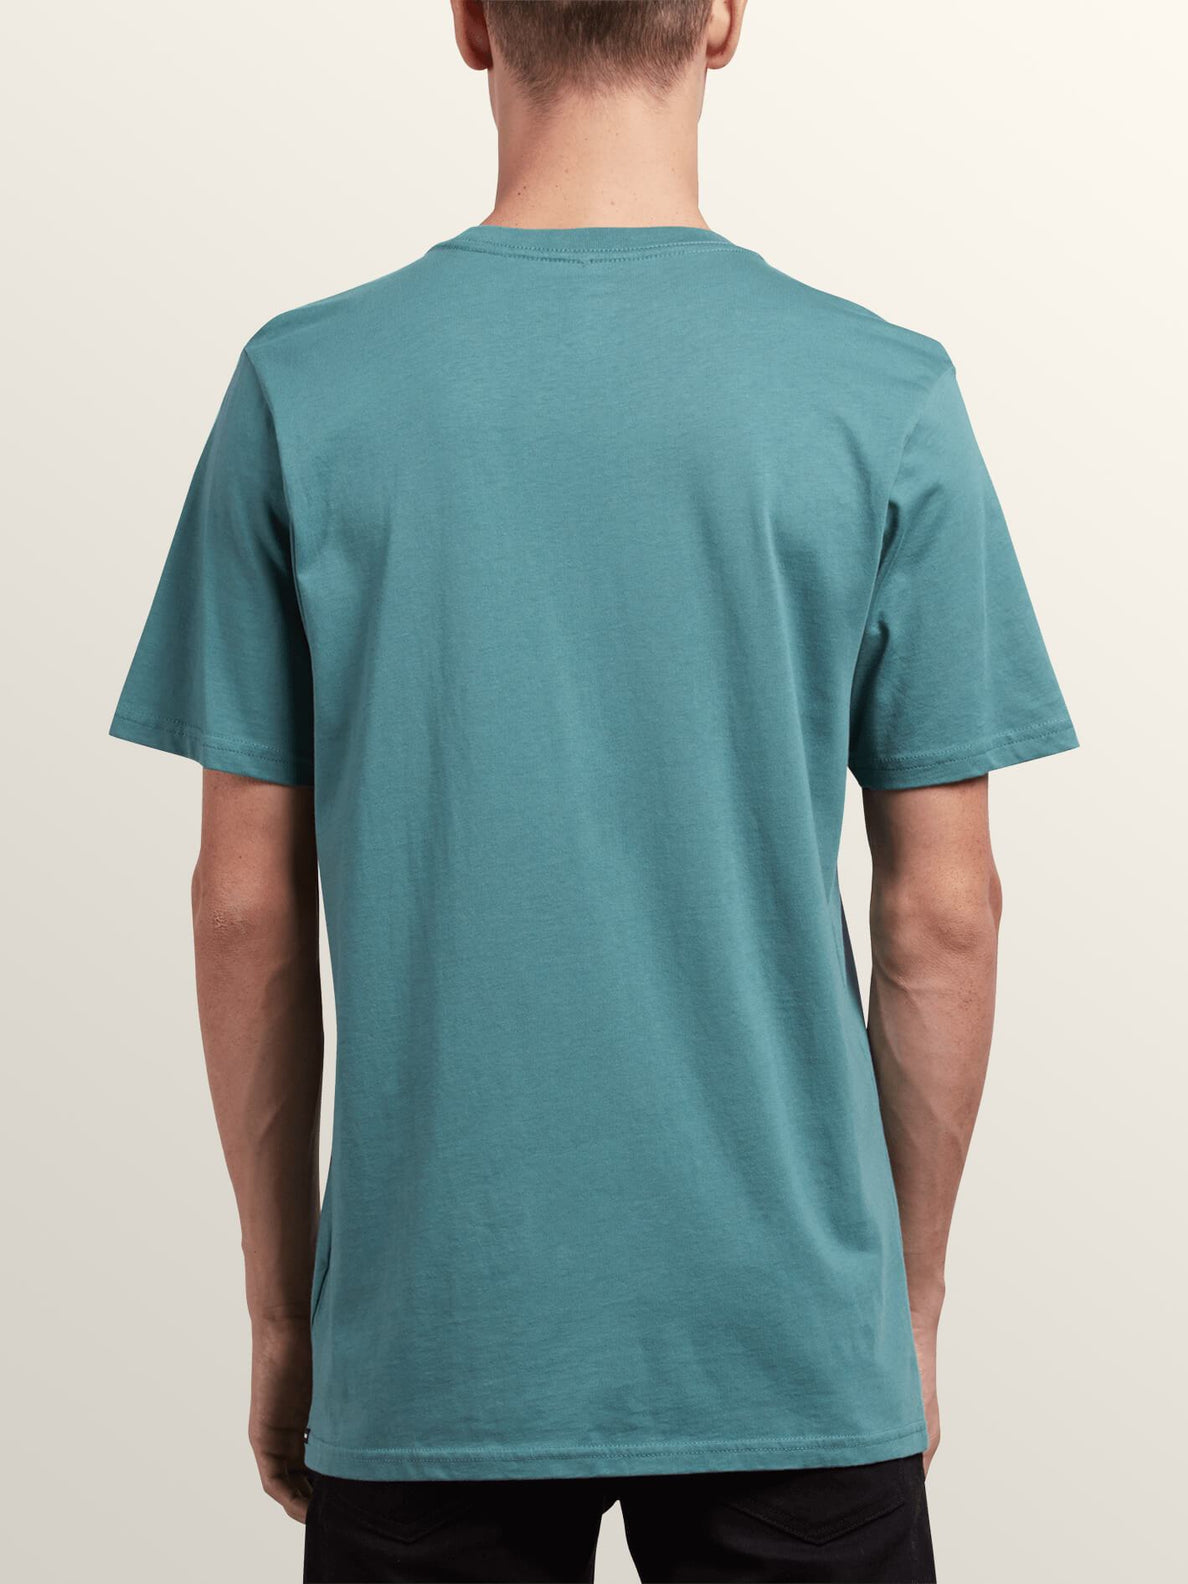 Extrano Short Sleeve Tee In Pine, Back View